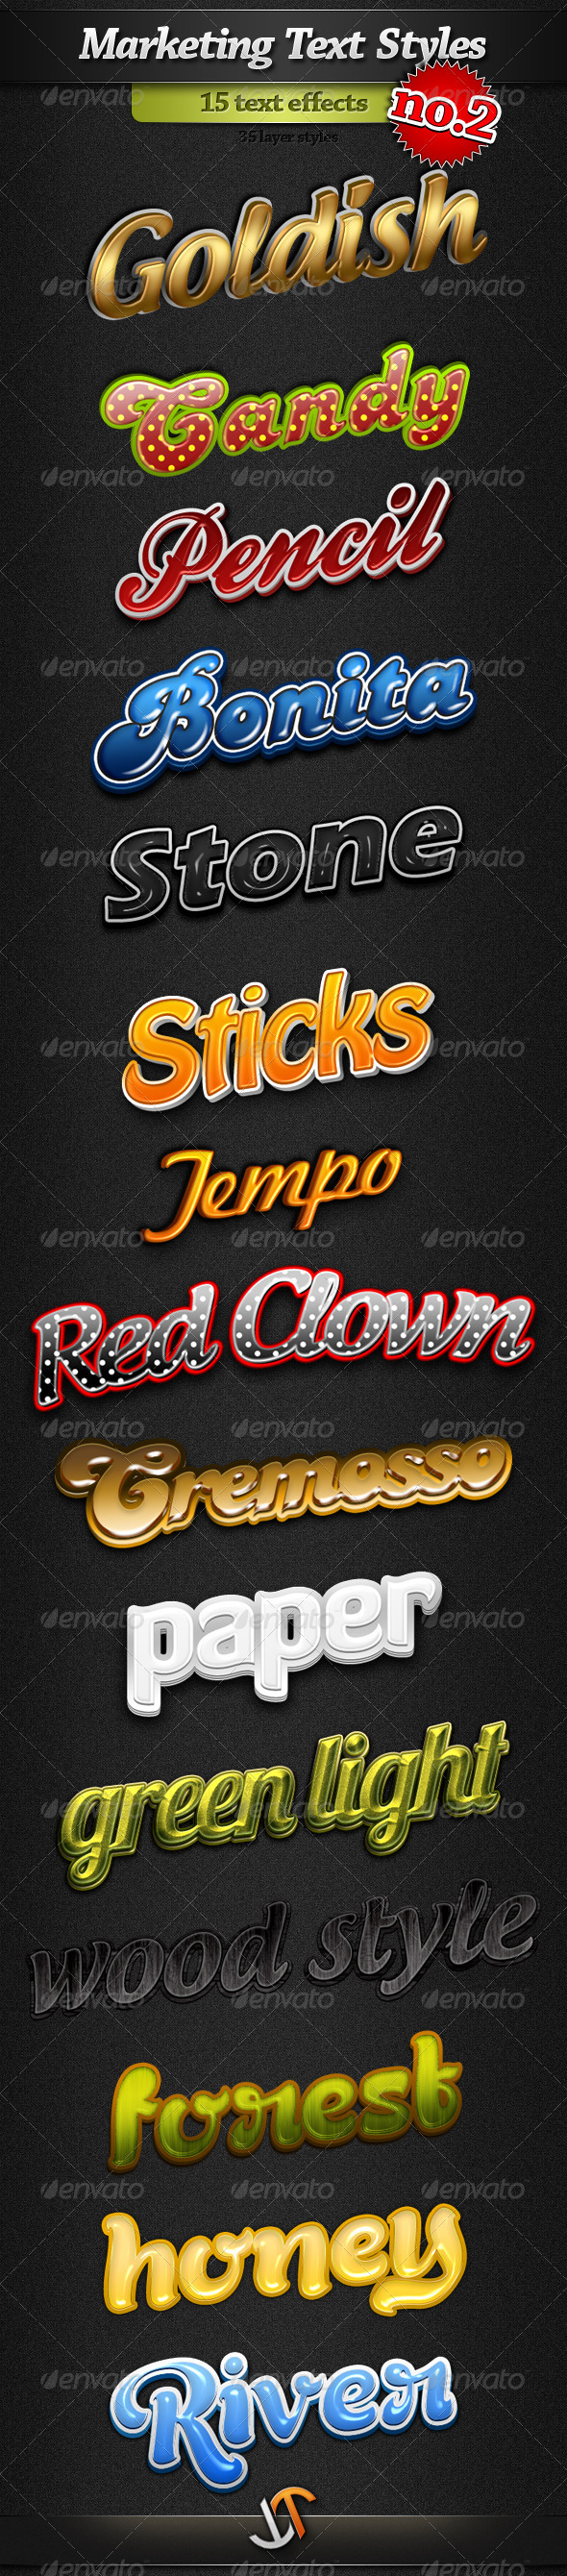 GraphicRiver Marketing Text Styles Pack 2 2661091